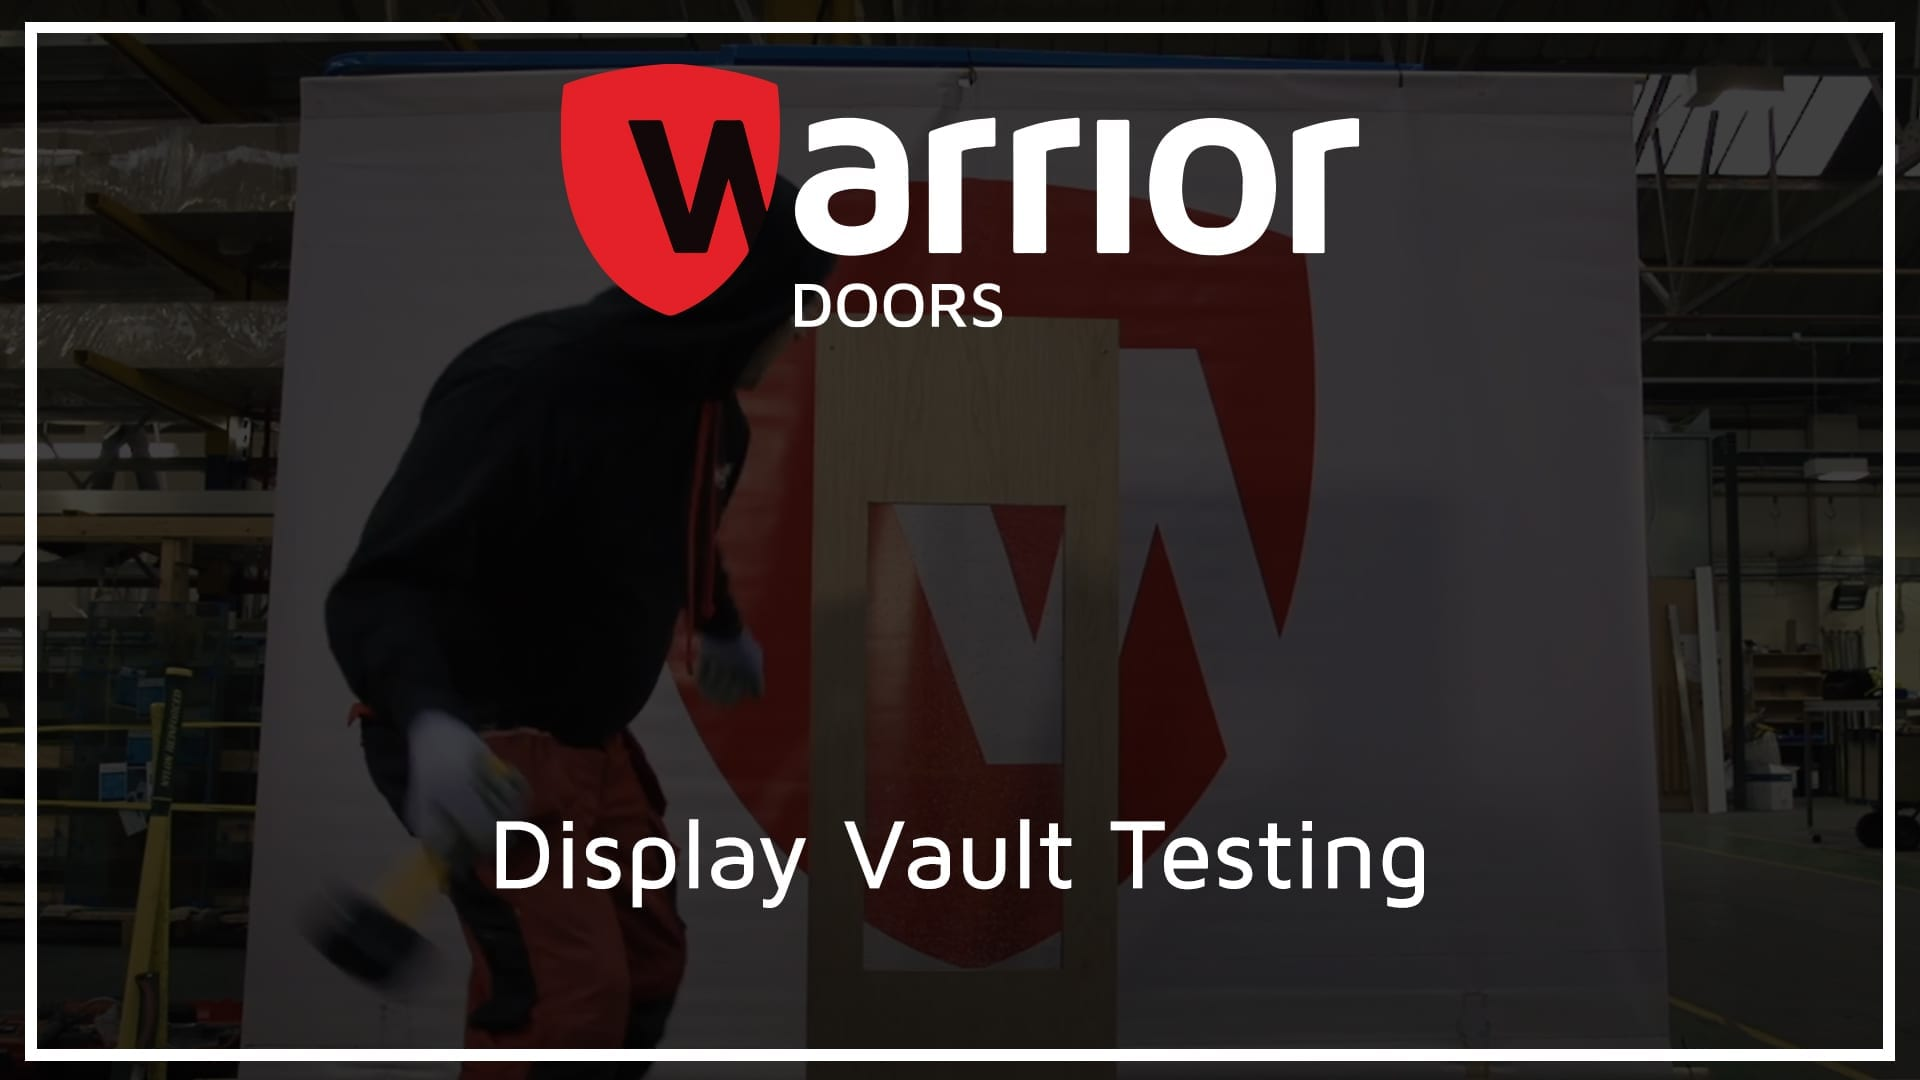 """man hitting display vault with sledgehammer with Warrior Doors logo and text reading """"Display Vault Testing"""""""